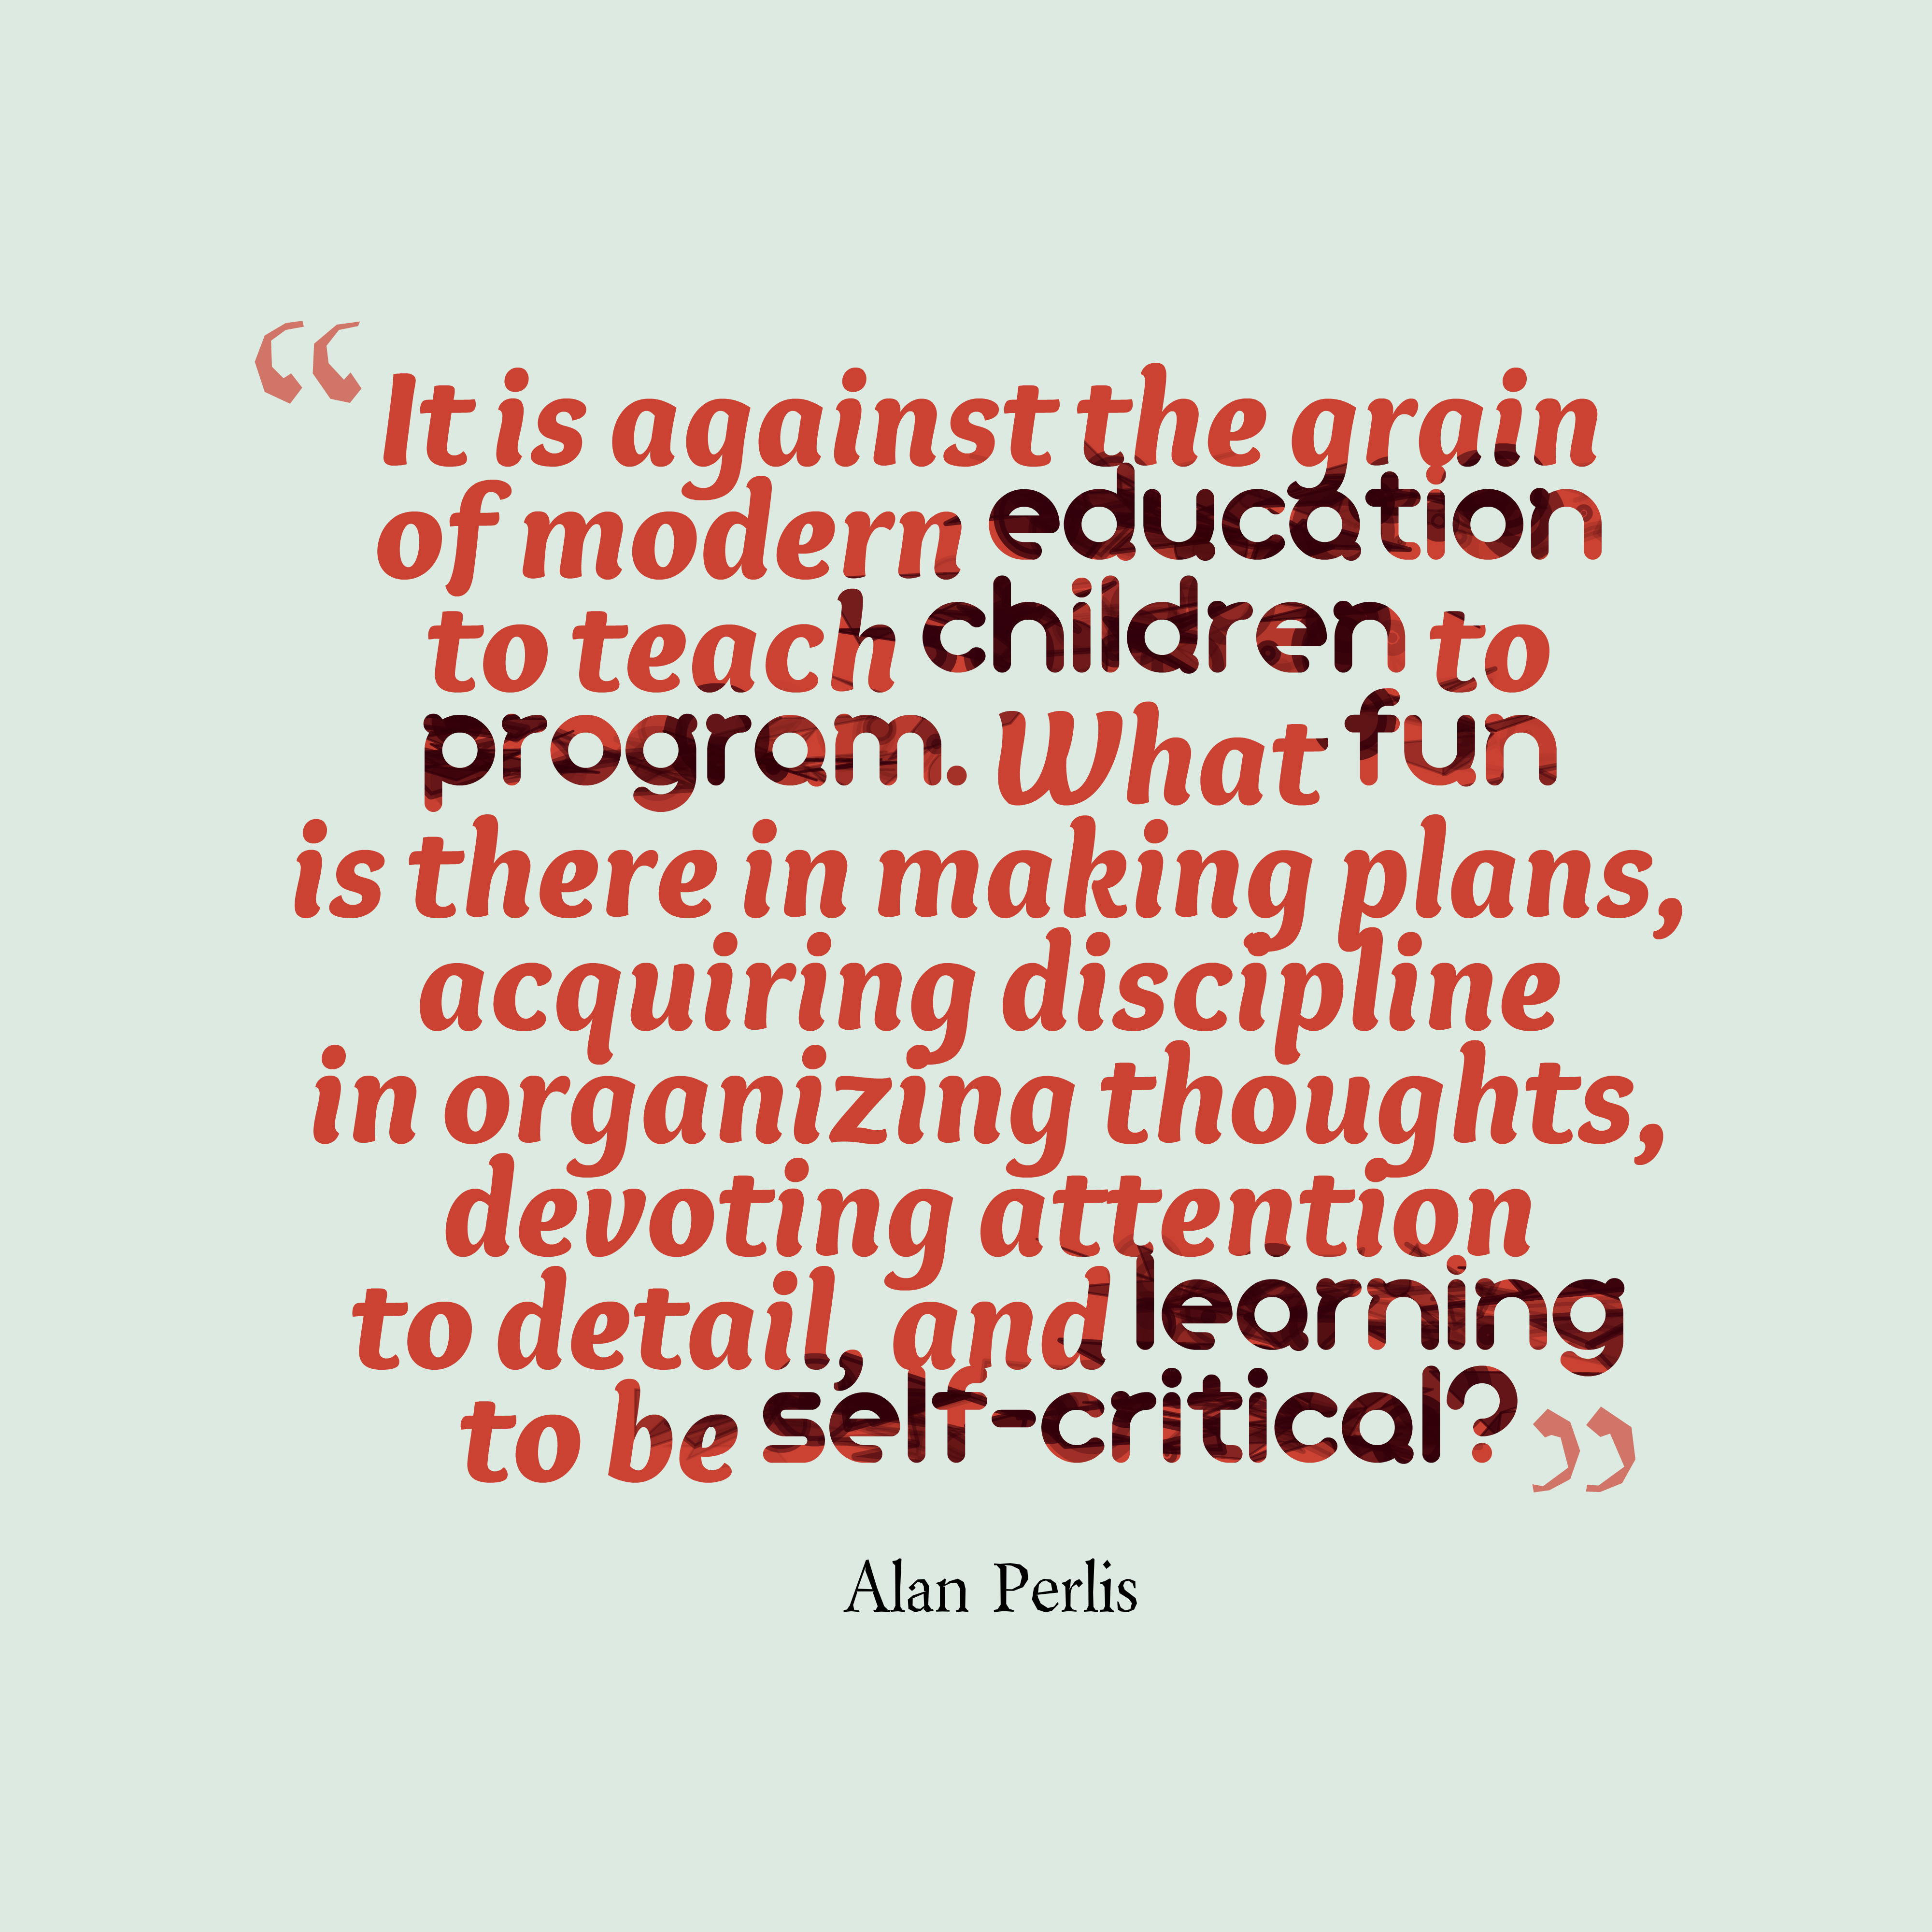 Quotes image of It is against the grain of modern education to teach children to program. What fun is there in making plans, acquiring discipline in organizing thoughts, devoting attention to detail, and learning to be self-critical?